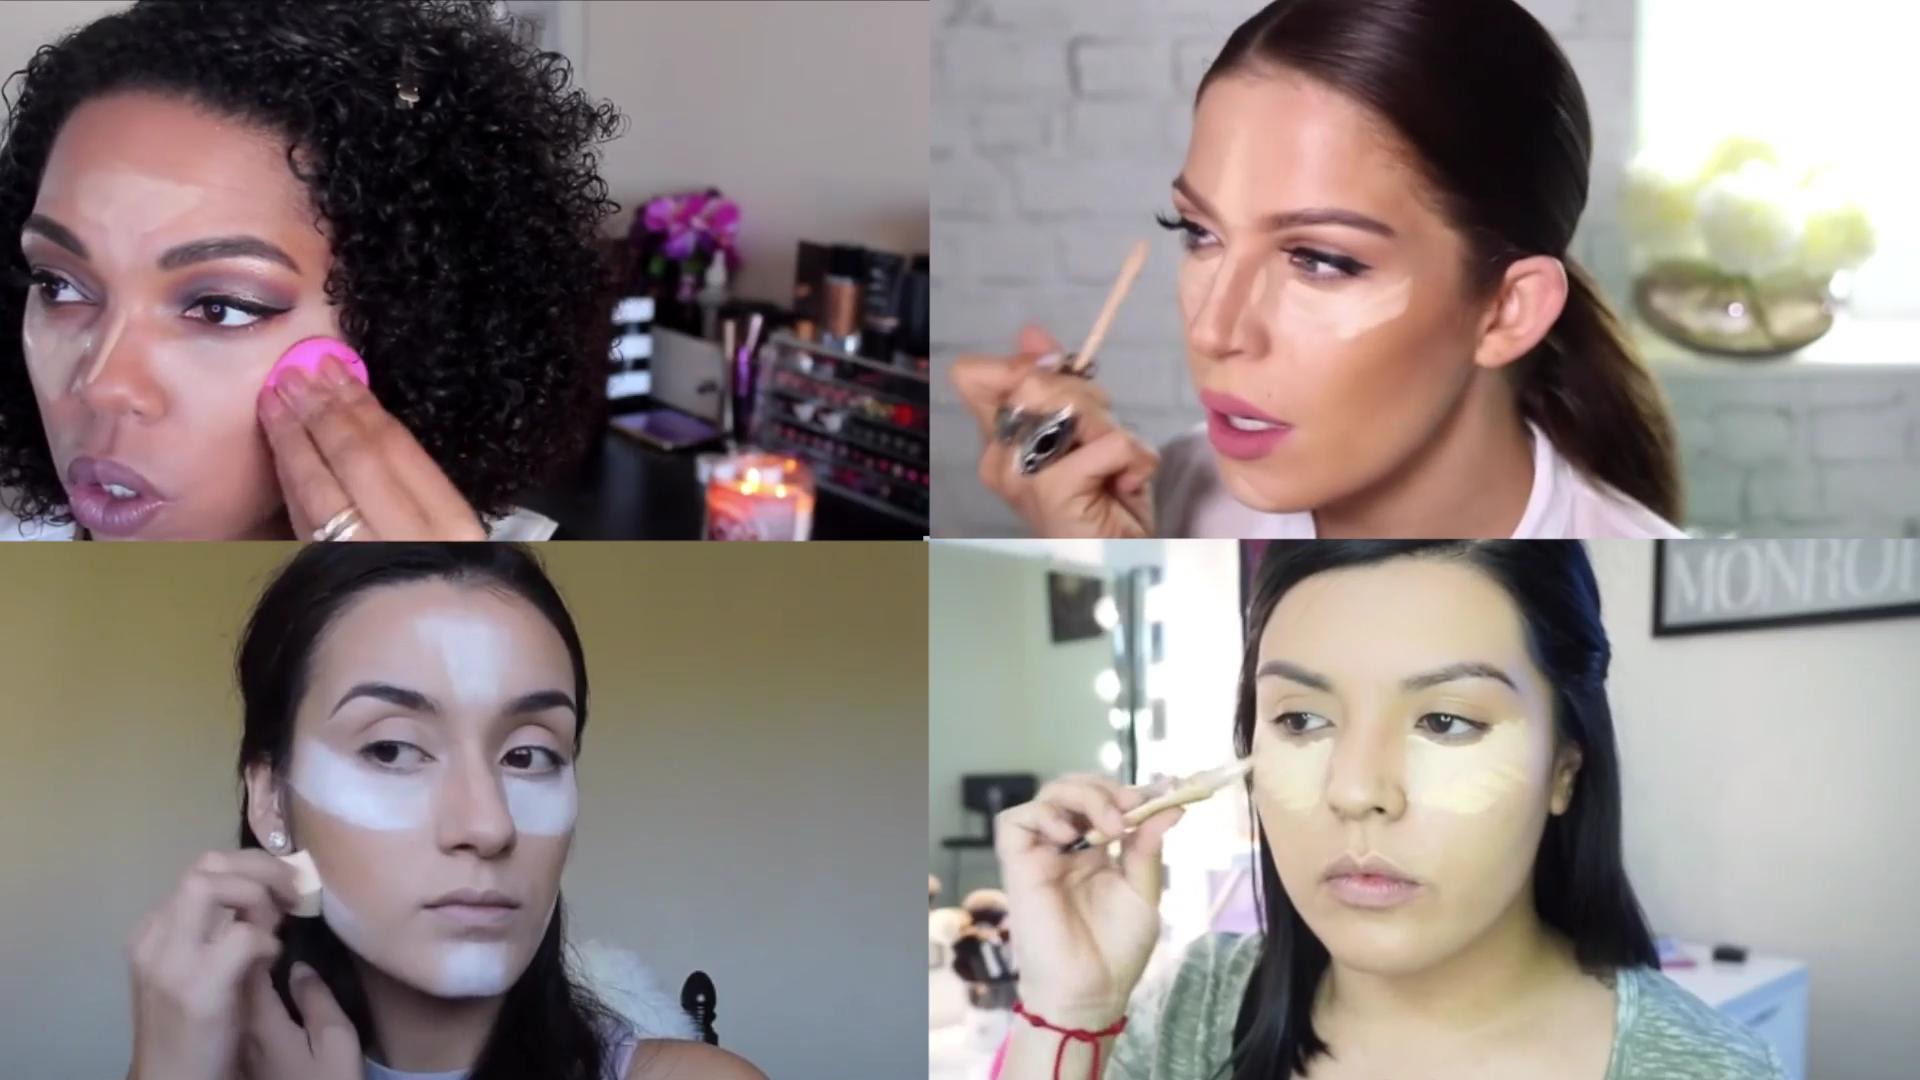 'Baking' is the latest make-up trend you need to try